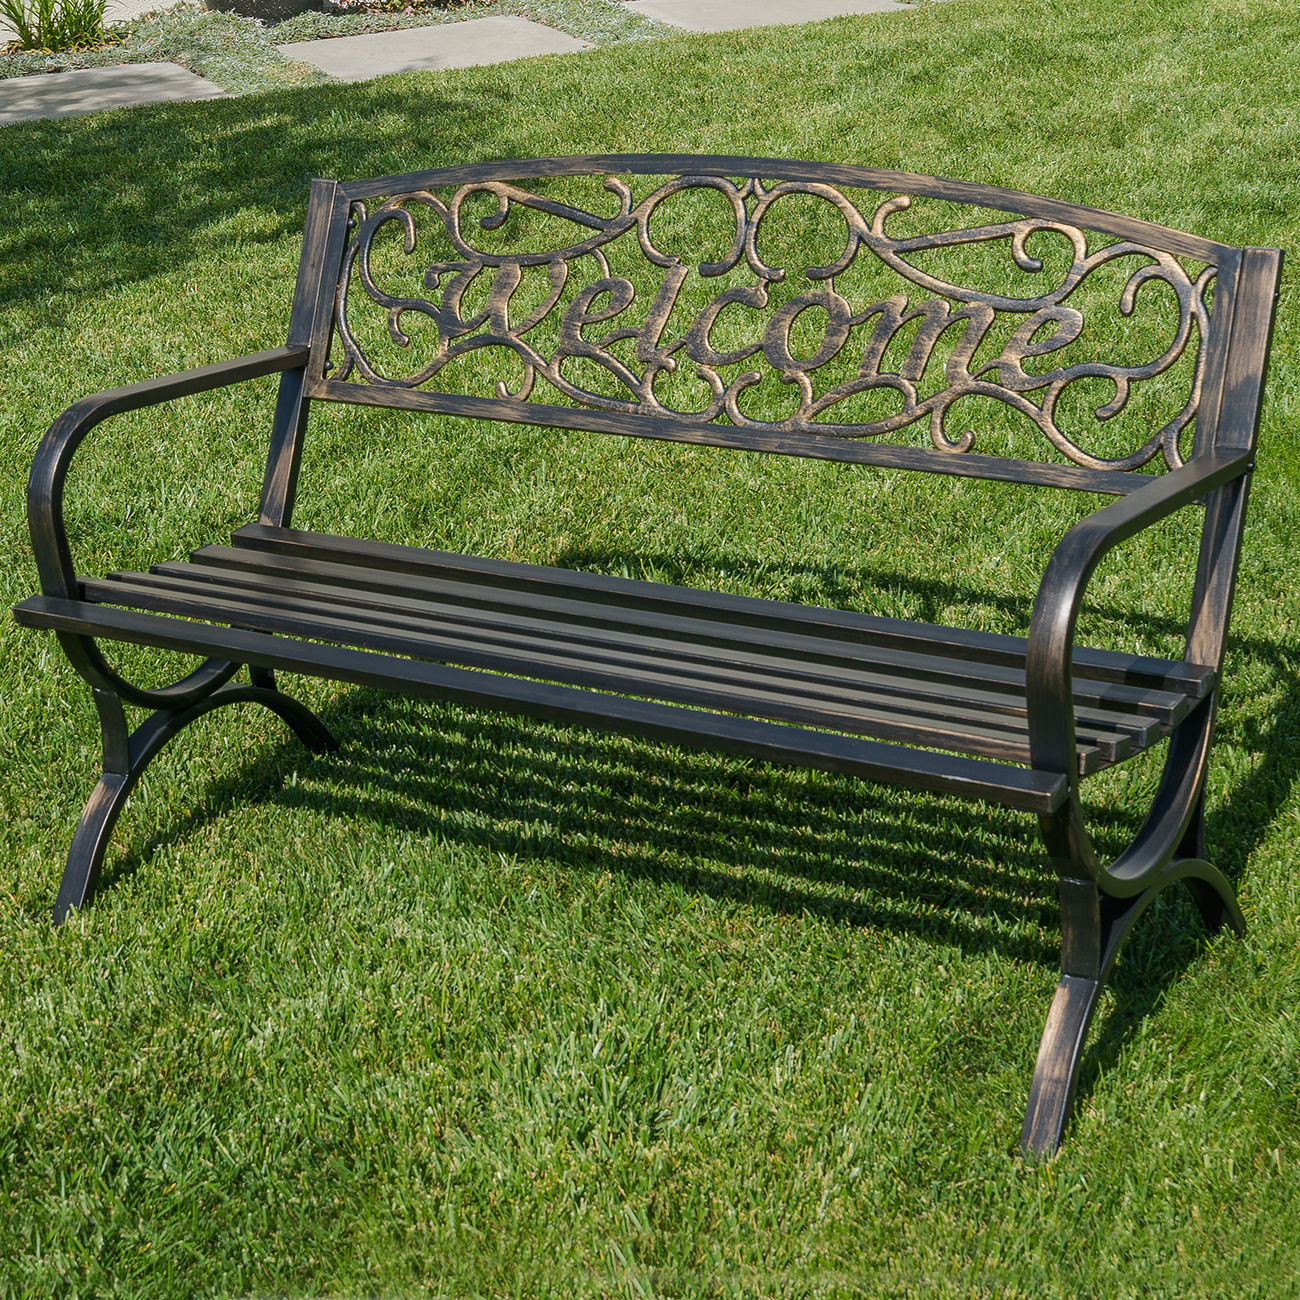 Incredible Details About 50 Welcome Decorative Patio Garden Outdoor Park Bench Seat Backyard Bronze Gmtry Best Dining Table And Chair Ideas Images Gmtryco